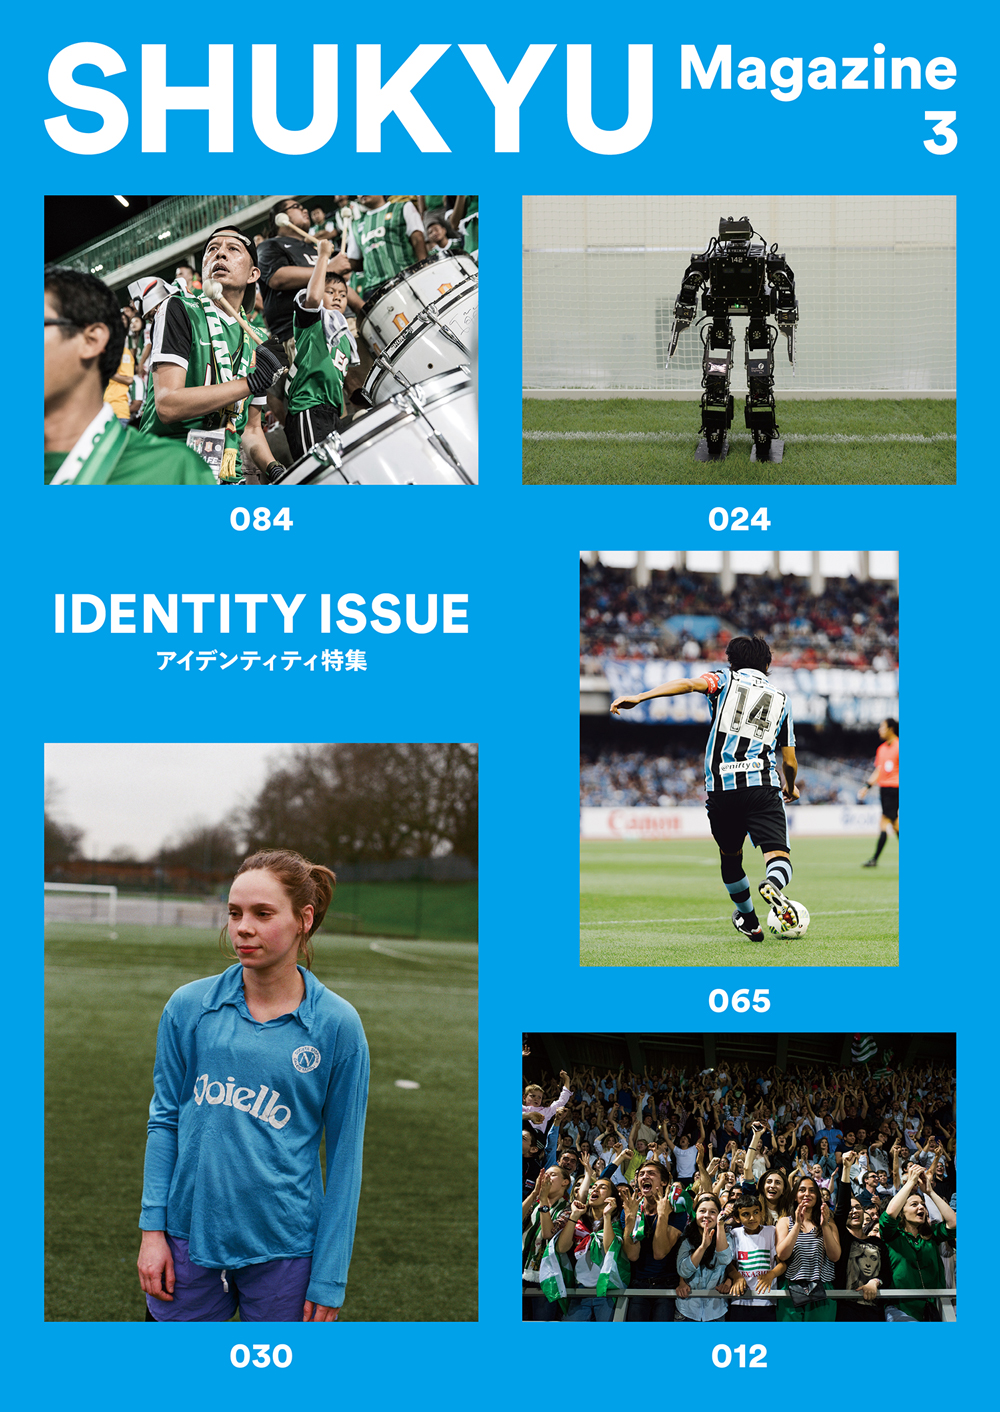 SHUKYU Magazine IDENTITY ISSUE Cover